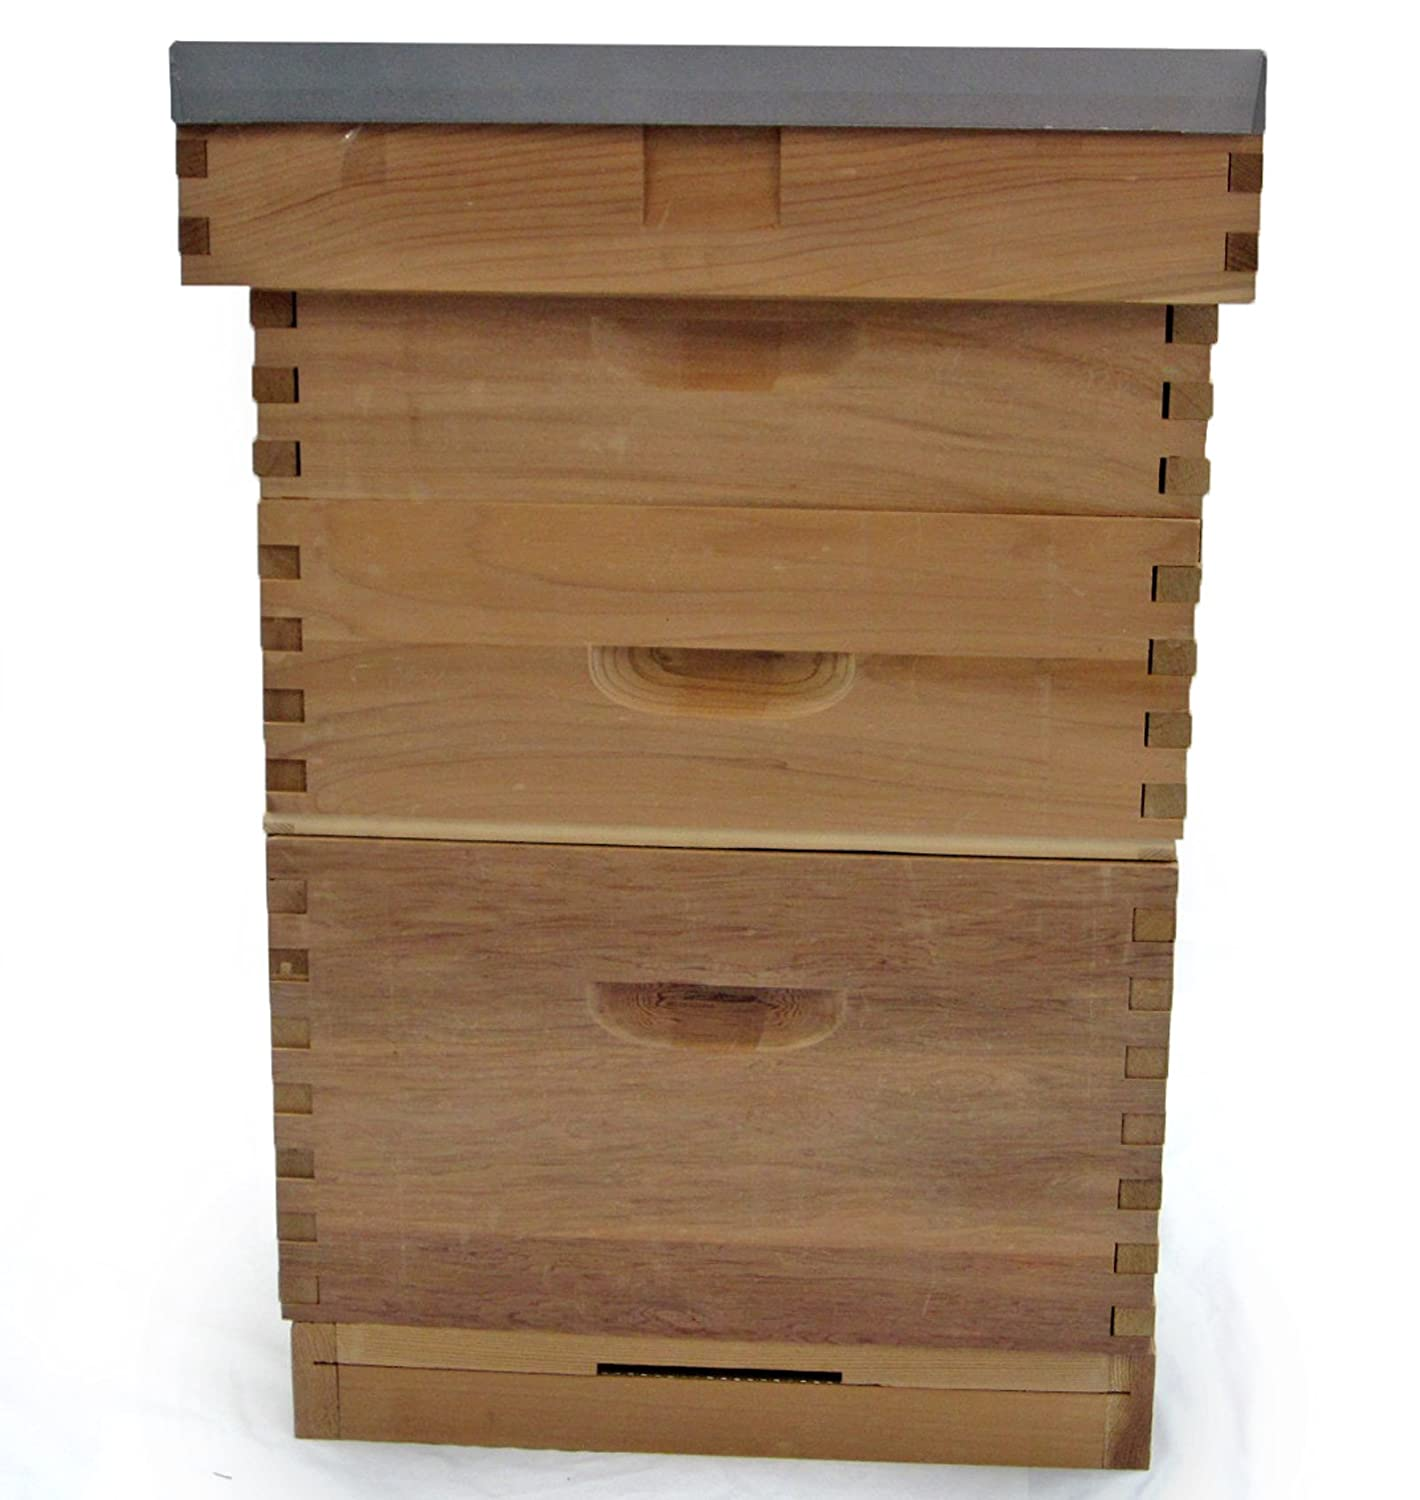 Easipet Langstroth Beehive in Cedar with Flat Roof FED21870